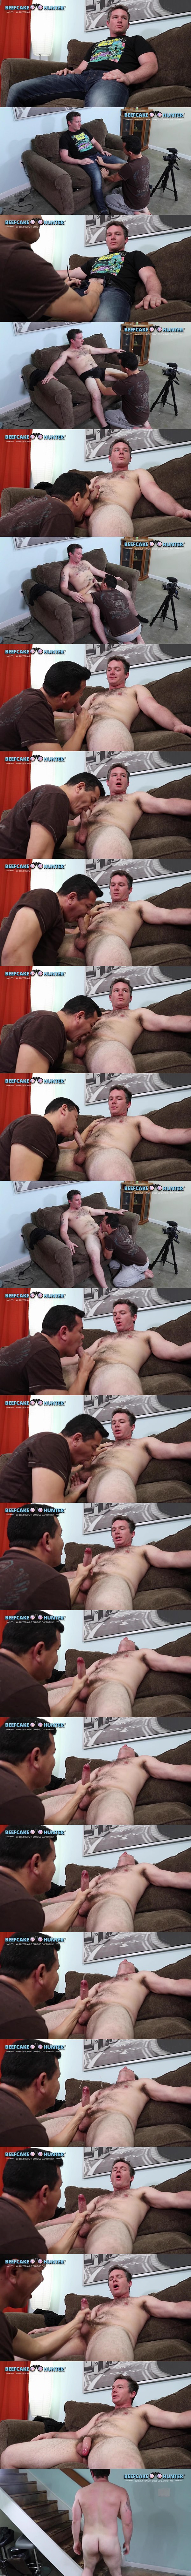 Hot newcomer, stocky straight uber driver Craig gets sucked and serviced by Victor until Victor jerks Craig off in Edging Uber Driver Craig at Beefcakehunter 01